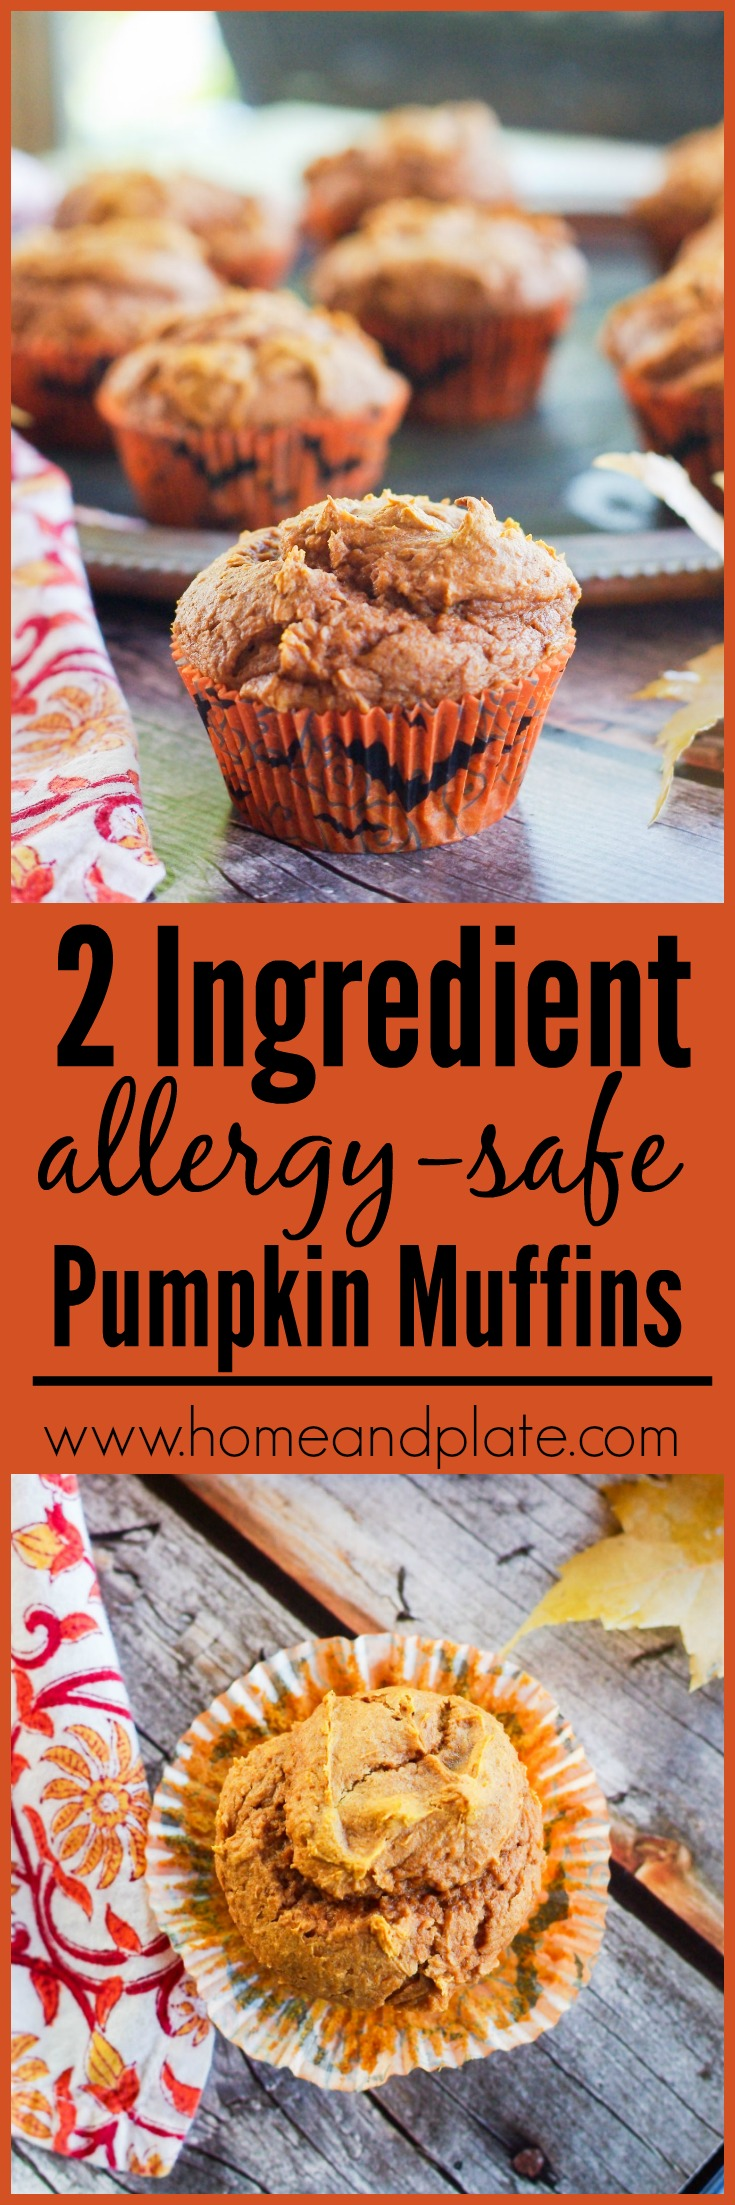 Two Ingredient Allergy Safe Pumpkin Muffins | www.homeandplate.com | Be the hero of your child's classroom party this Halloween and volunteer to bring in a snack that is safe for all. My two ingredient allergy safe pumpkin muffins are easy to make and delicious.